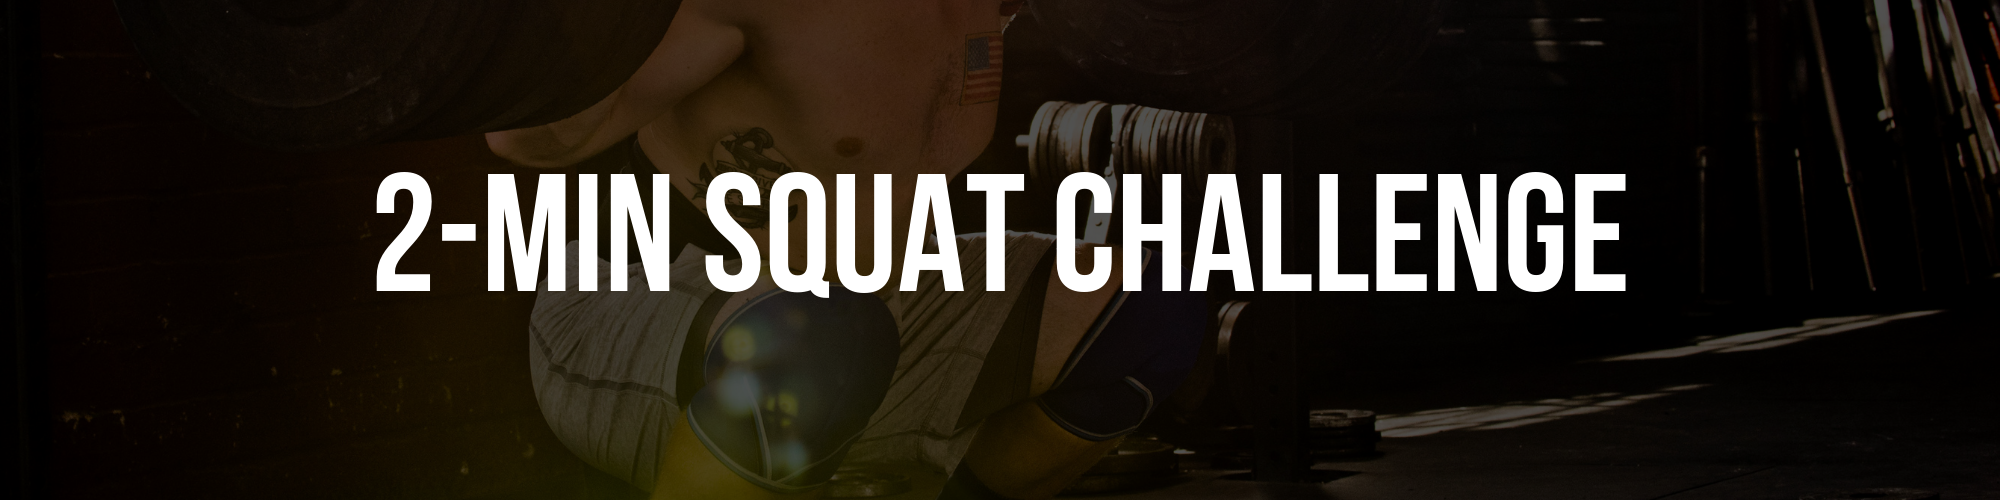 5th Nov - 2 Minute Squat Challenge